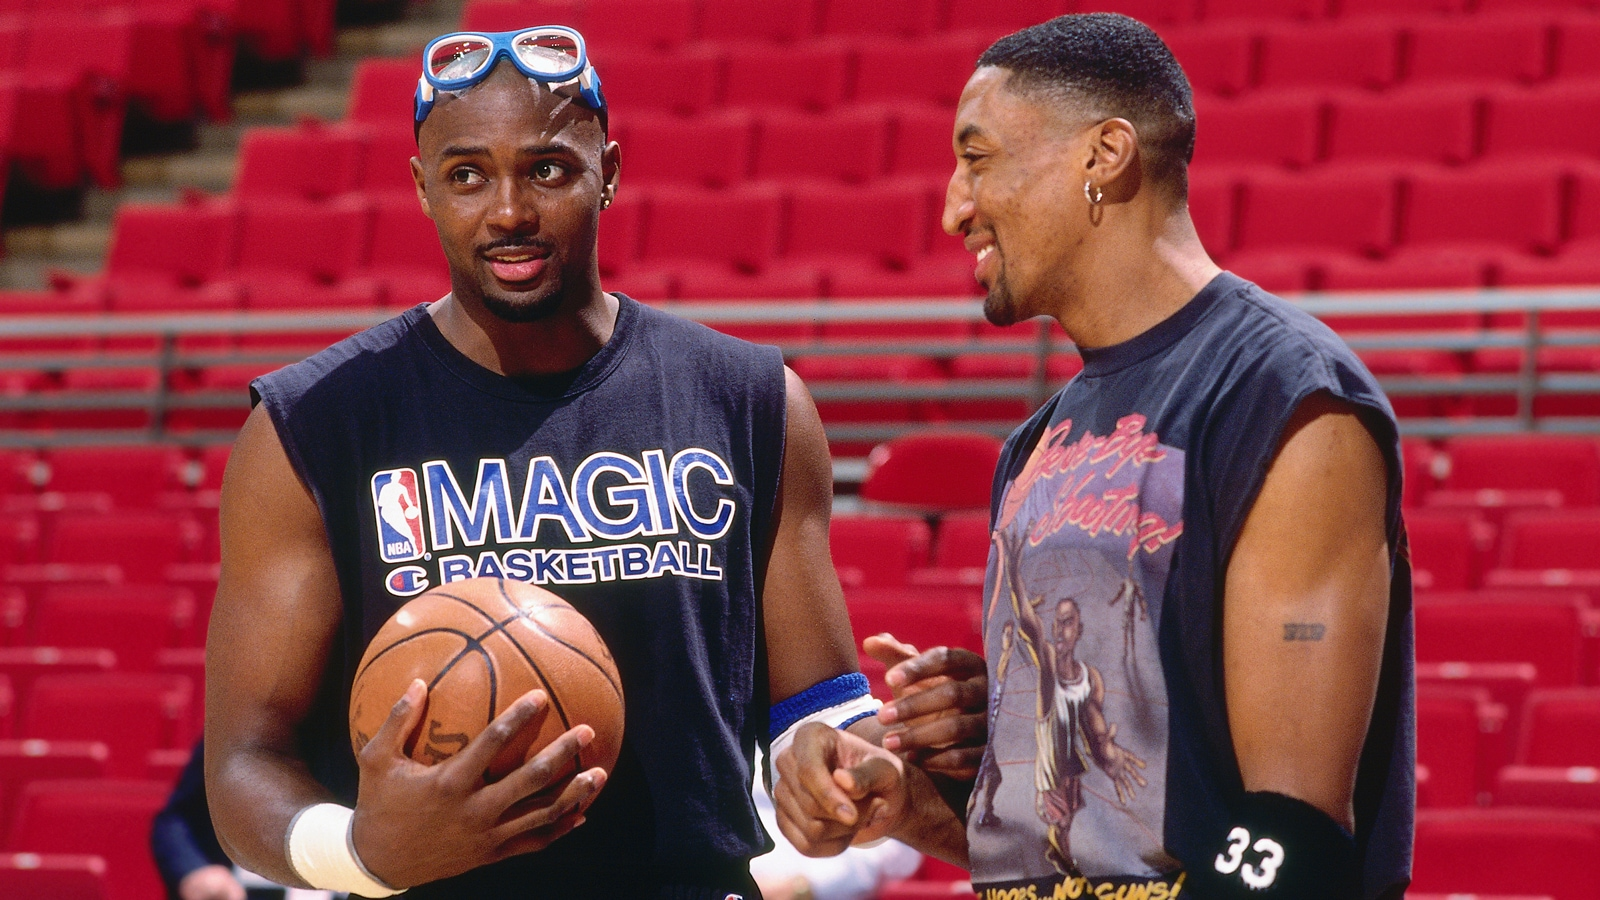 Horace Grant, as a member of the Orlando Magic, chats with Scottie Pippen pregame